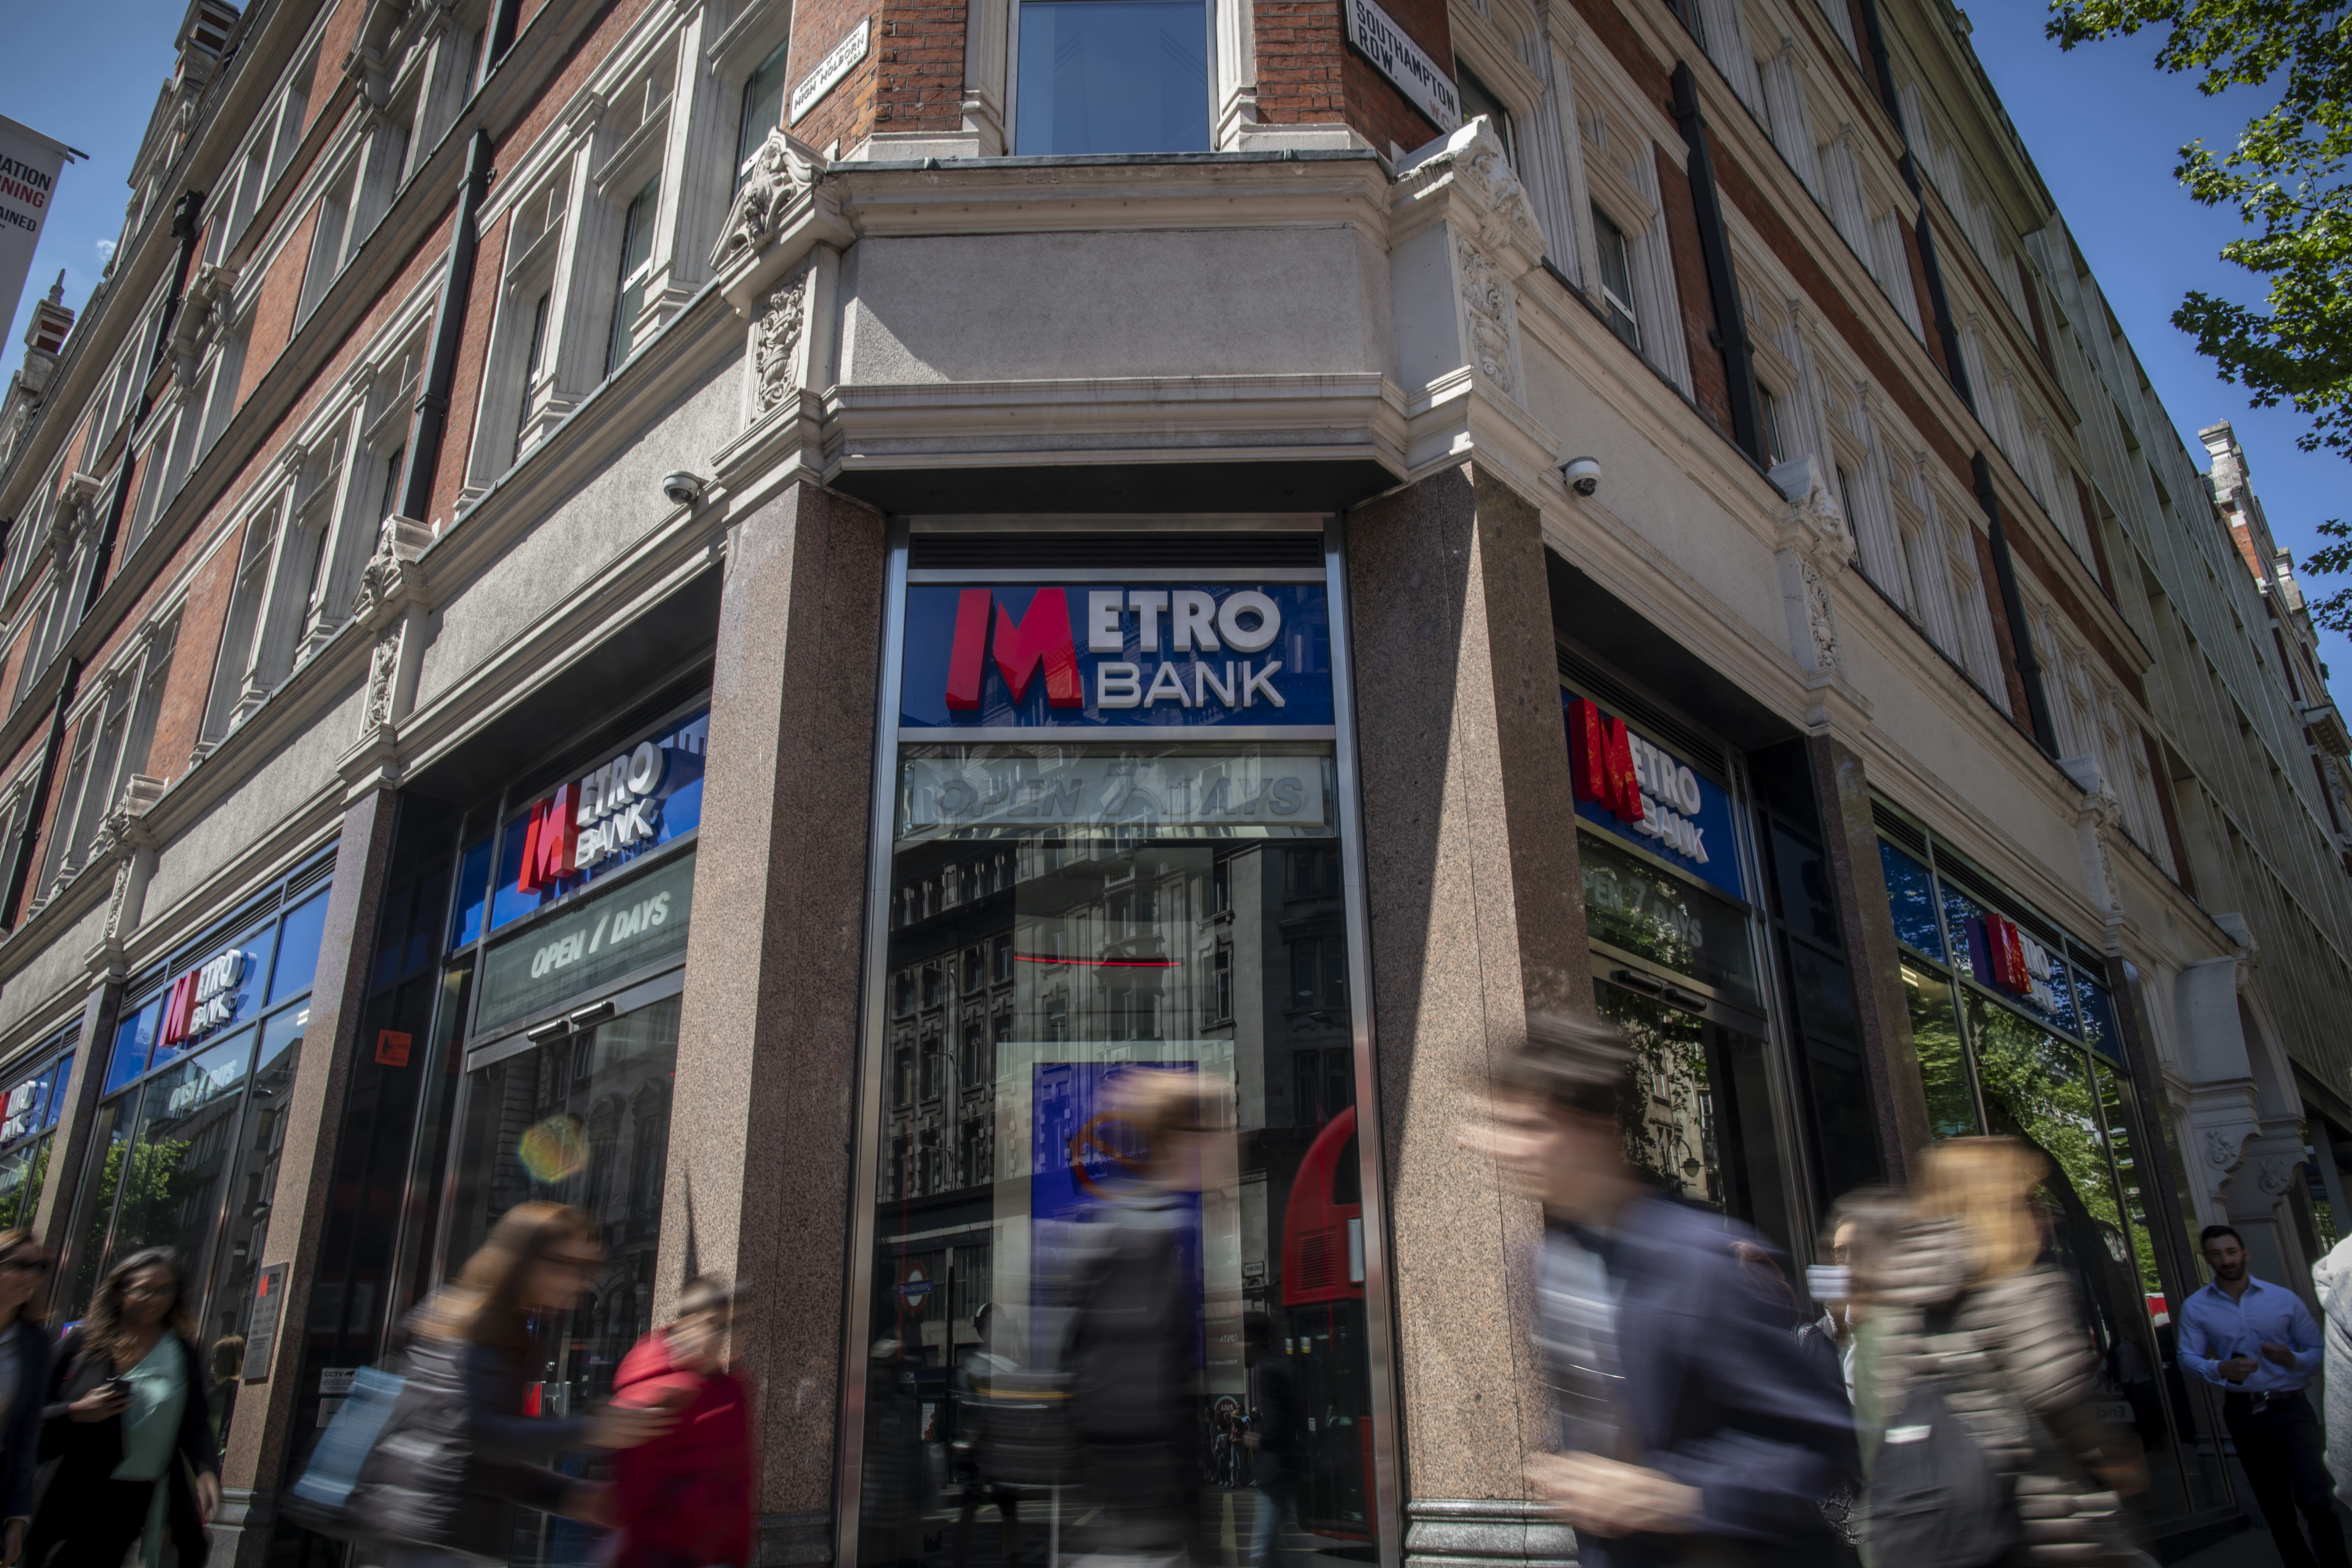 Metro Bank sells £3bn mortgage portfolio to NatWest